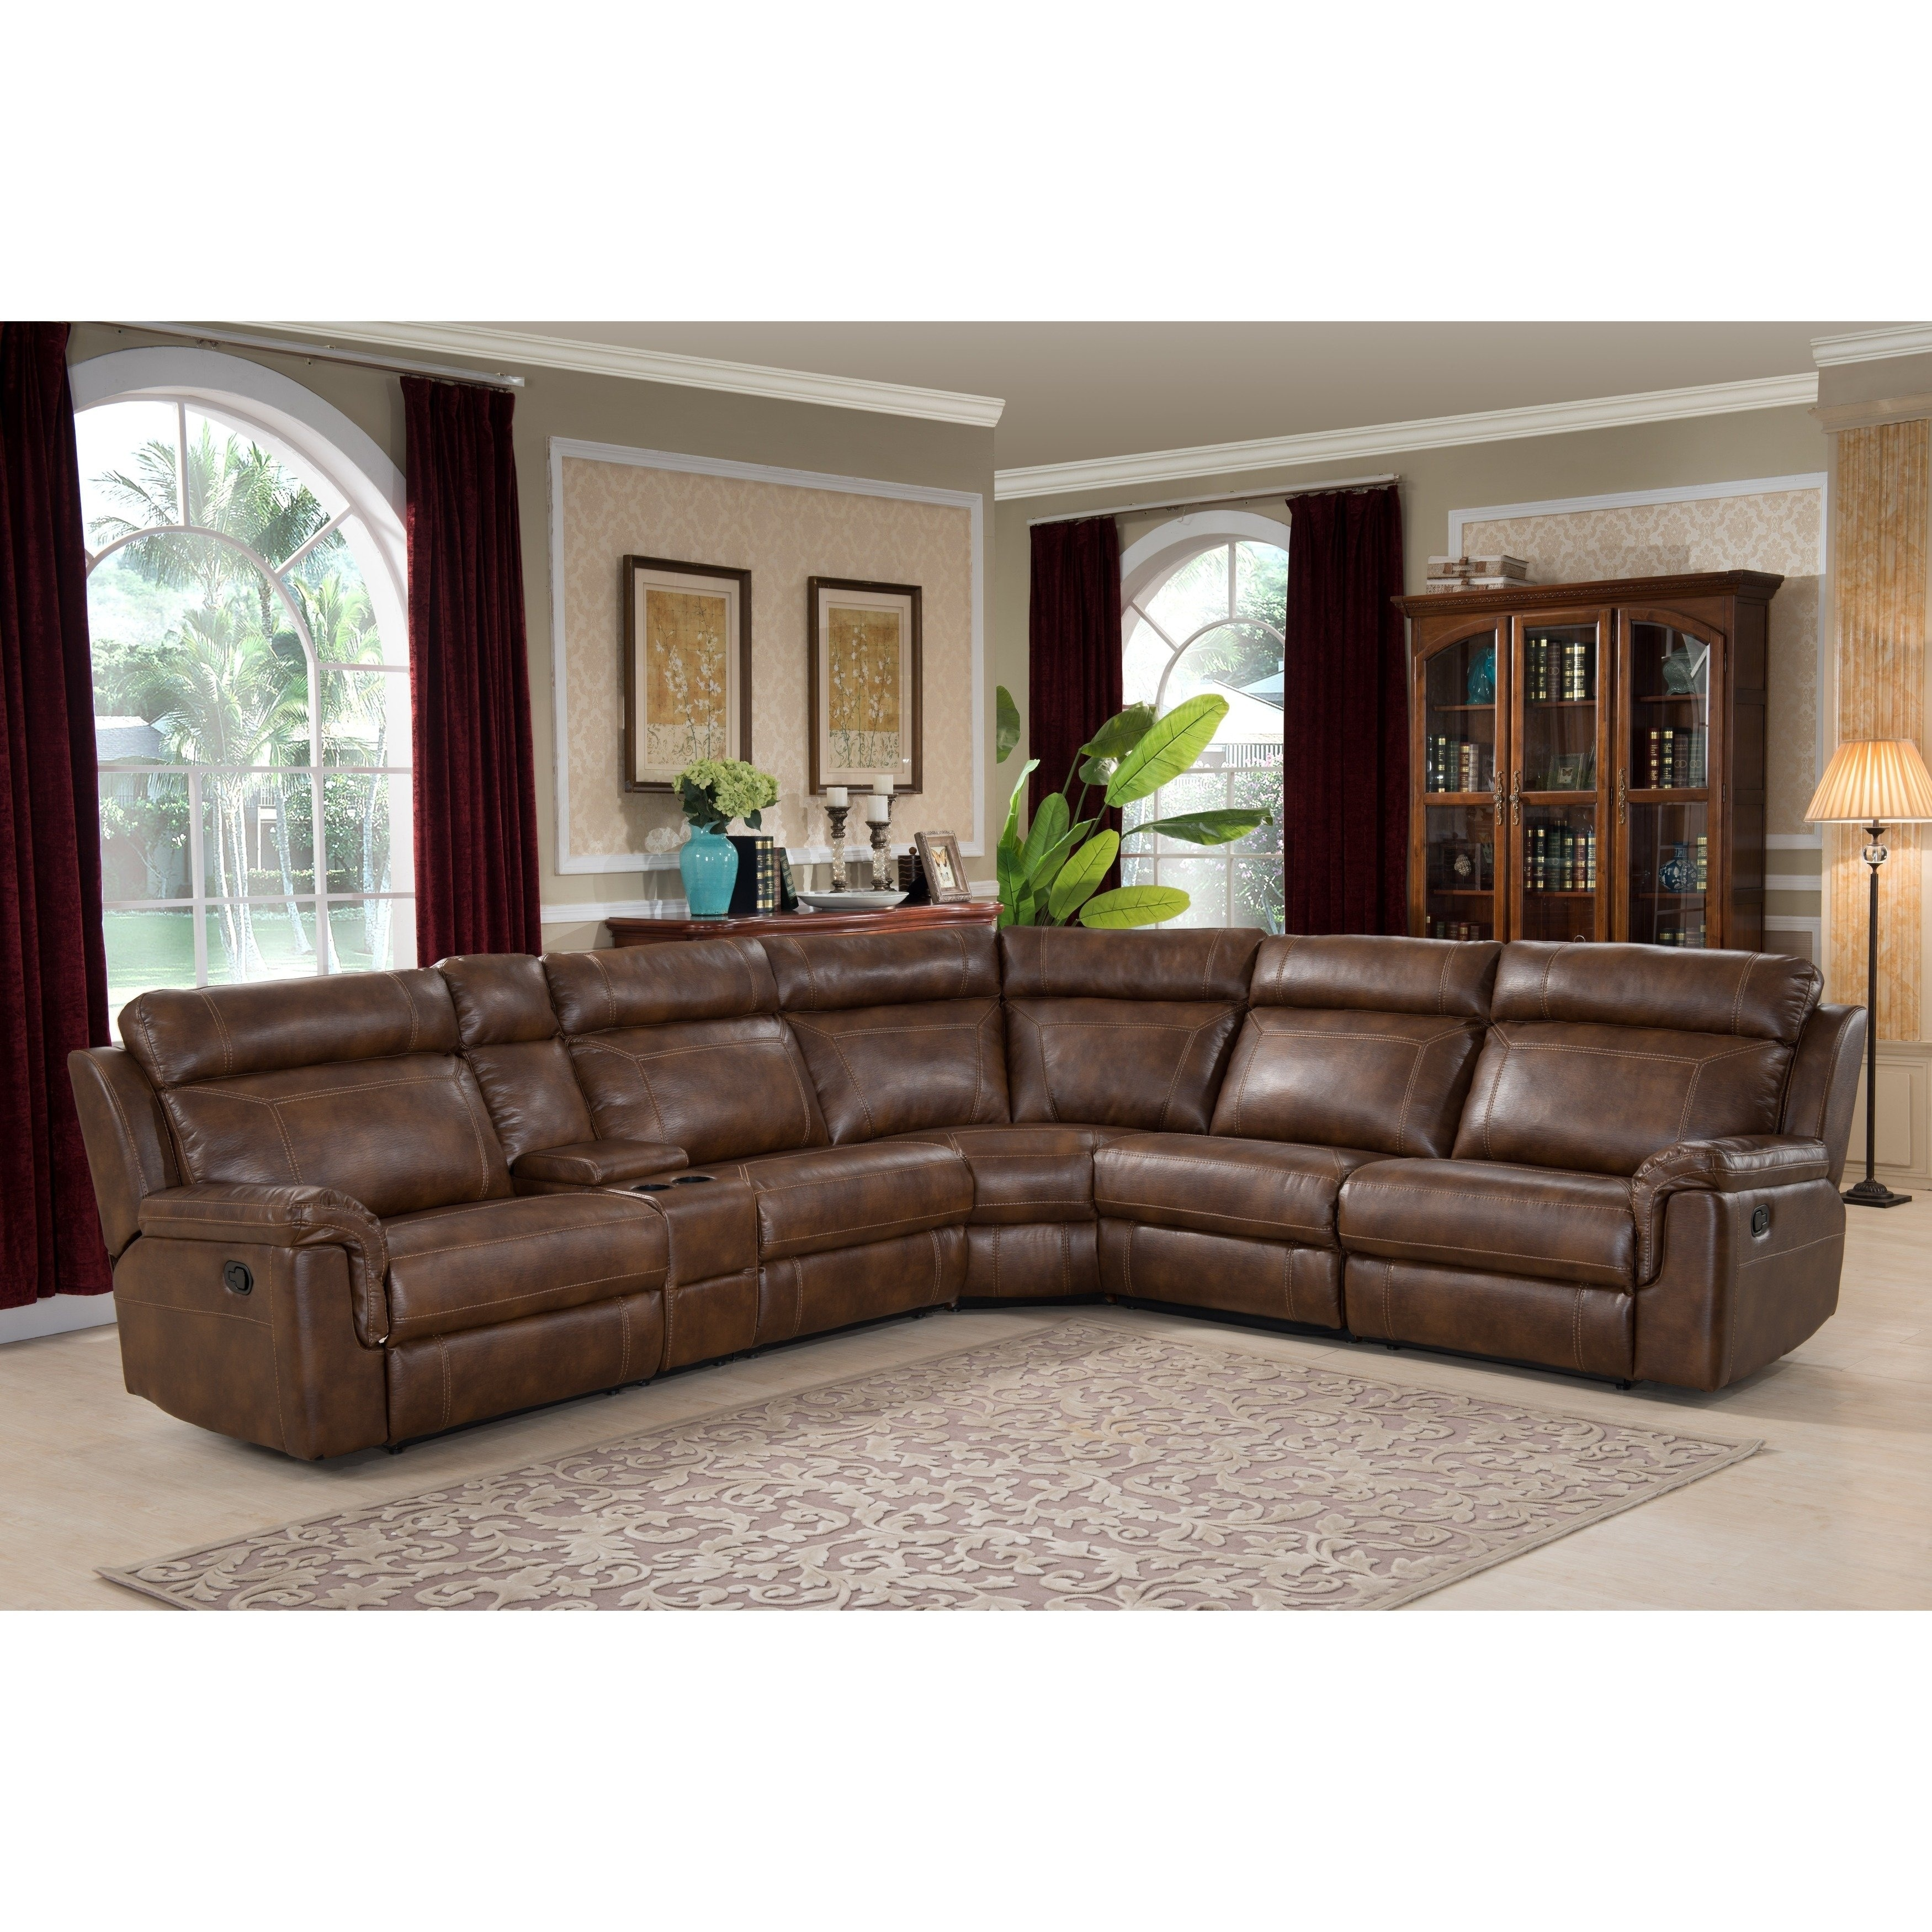 Admirable Nicole Reclining Leather Upholstered Sectional Sofa Andrewgaddart Wooden Chair Designs For Living Room Andrewgaddartcom